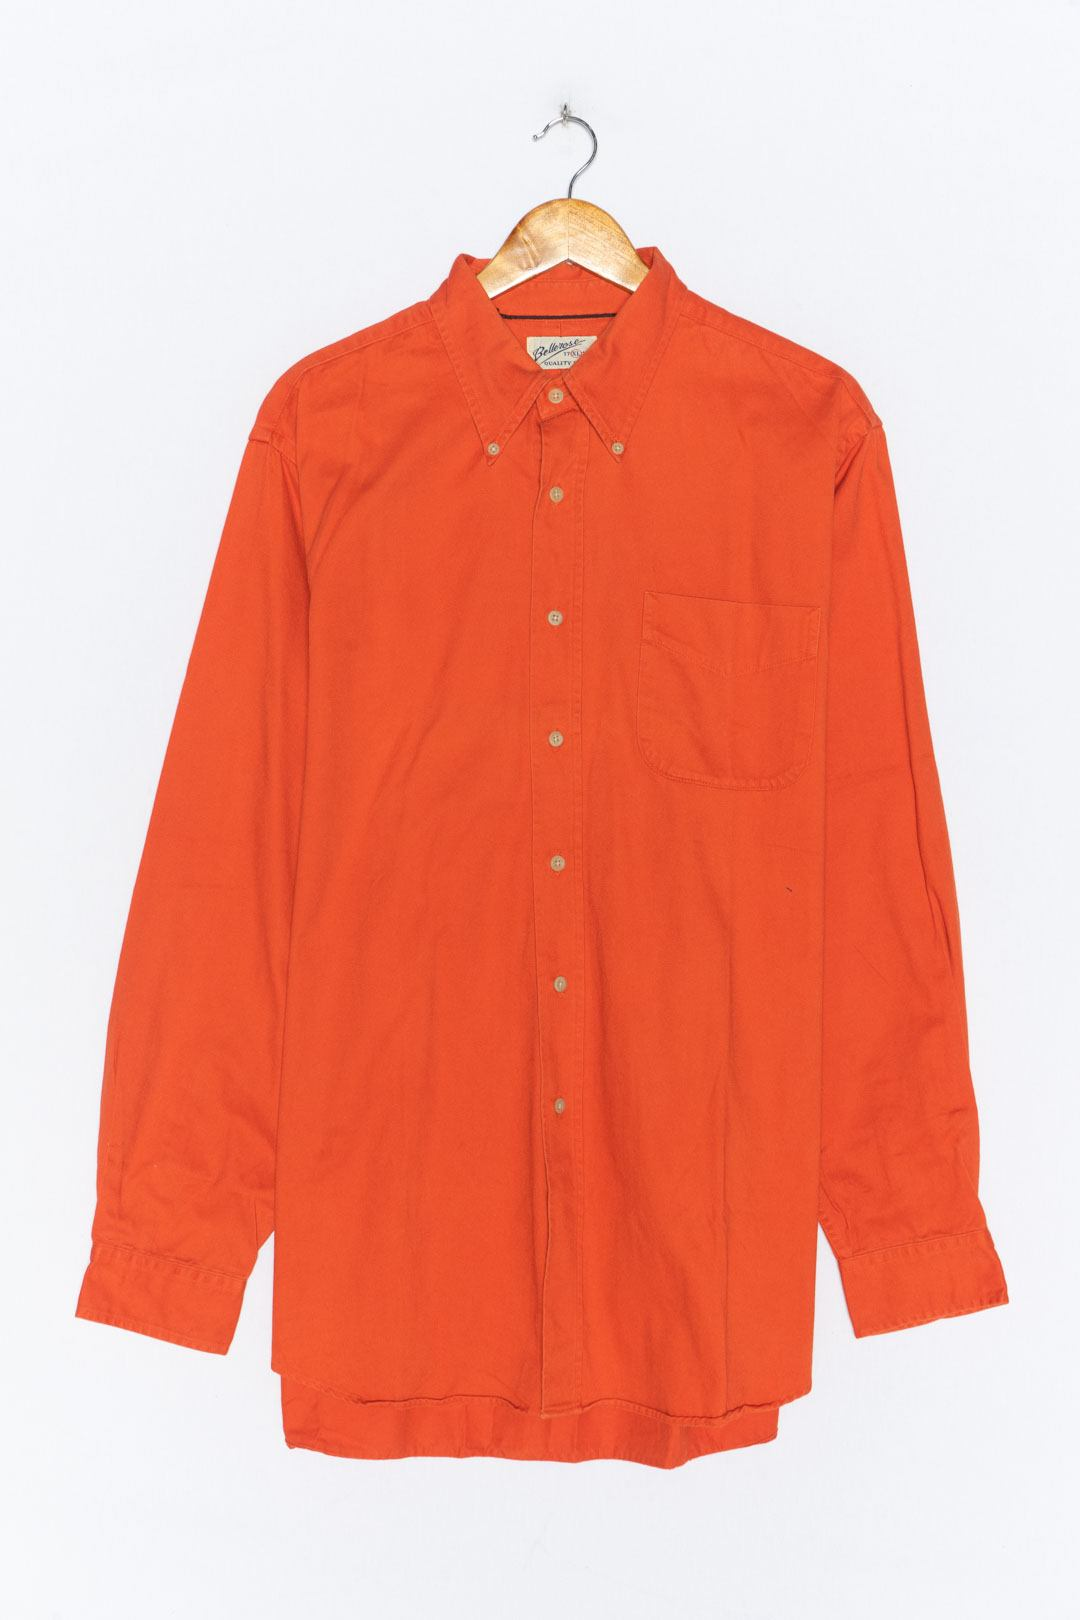 Orange Denim Shirt XL - VinoKilo.com